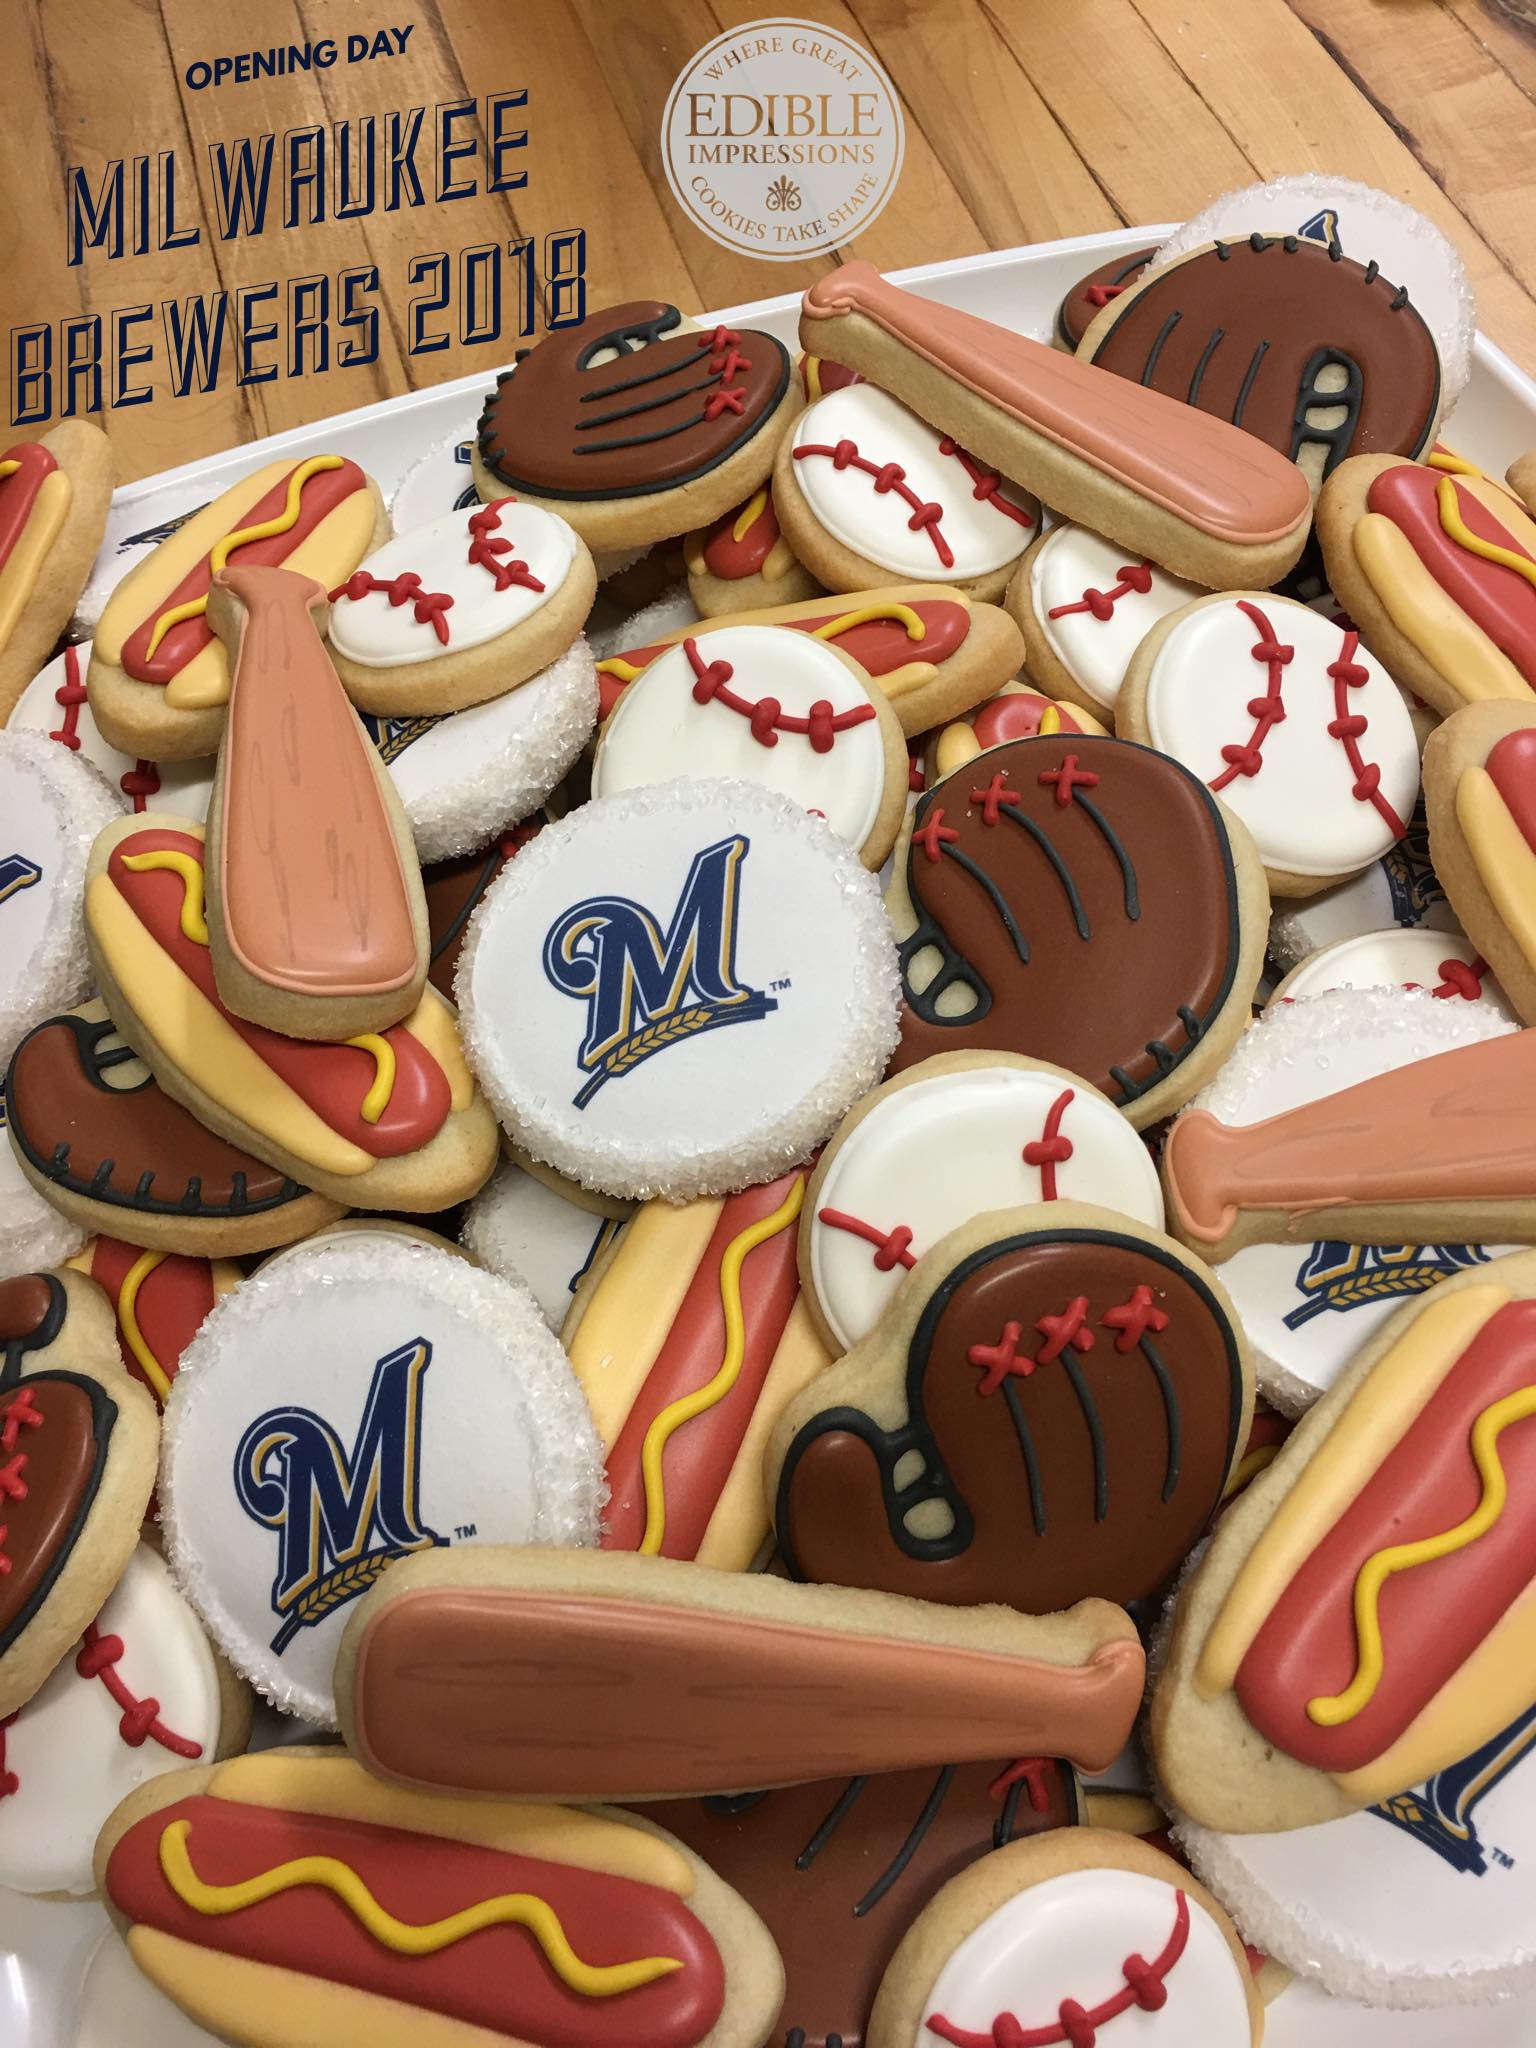 Brewers Opening Day pic.jpg